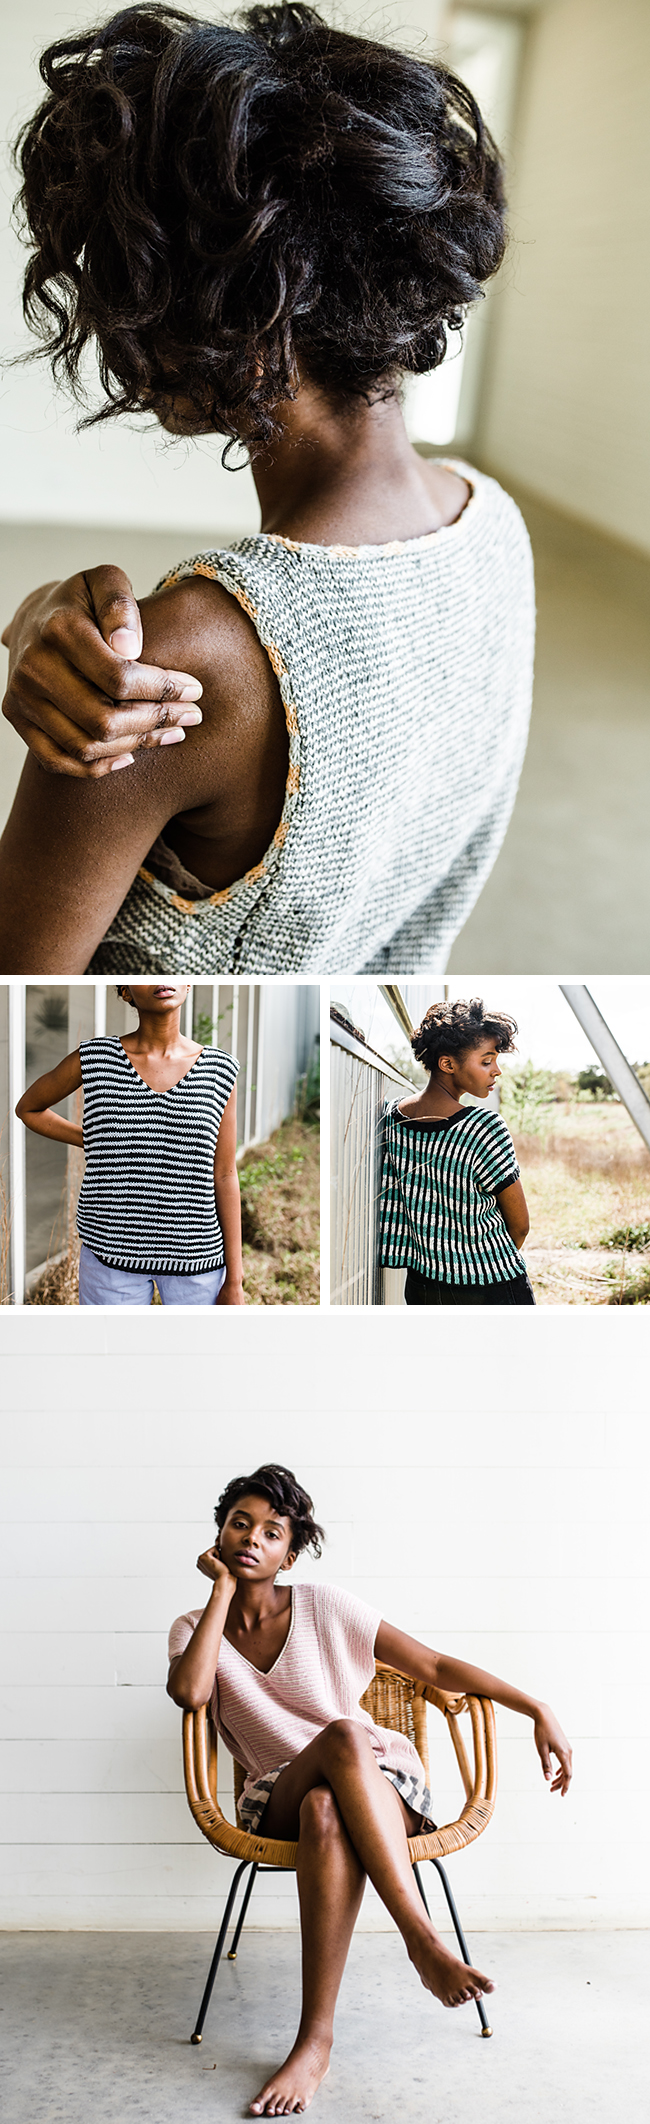 New Favorites: Summer stripes